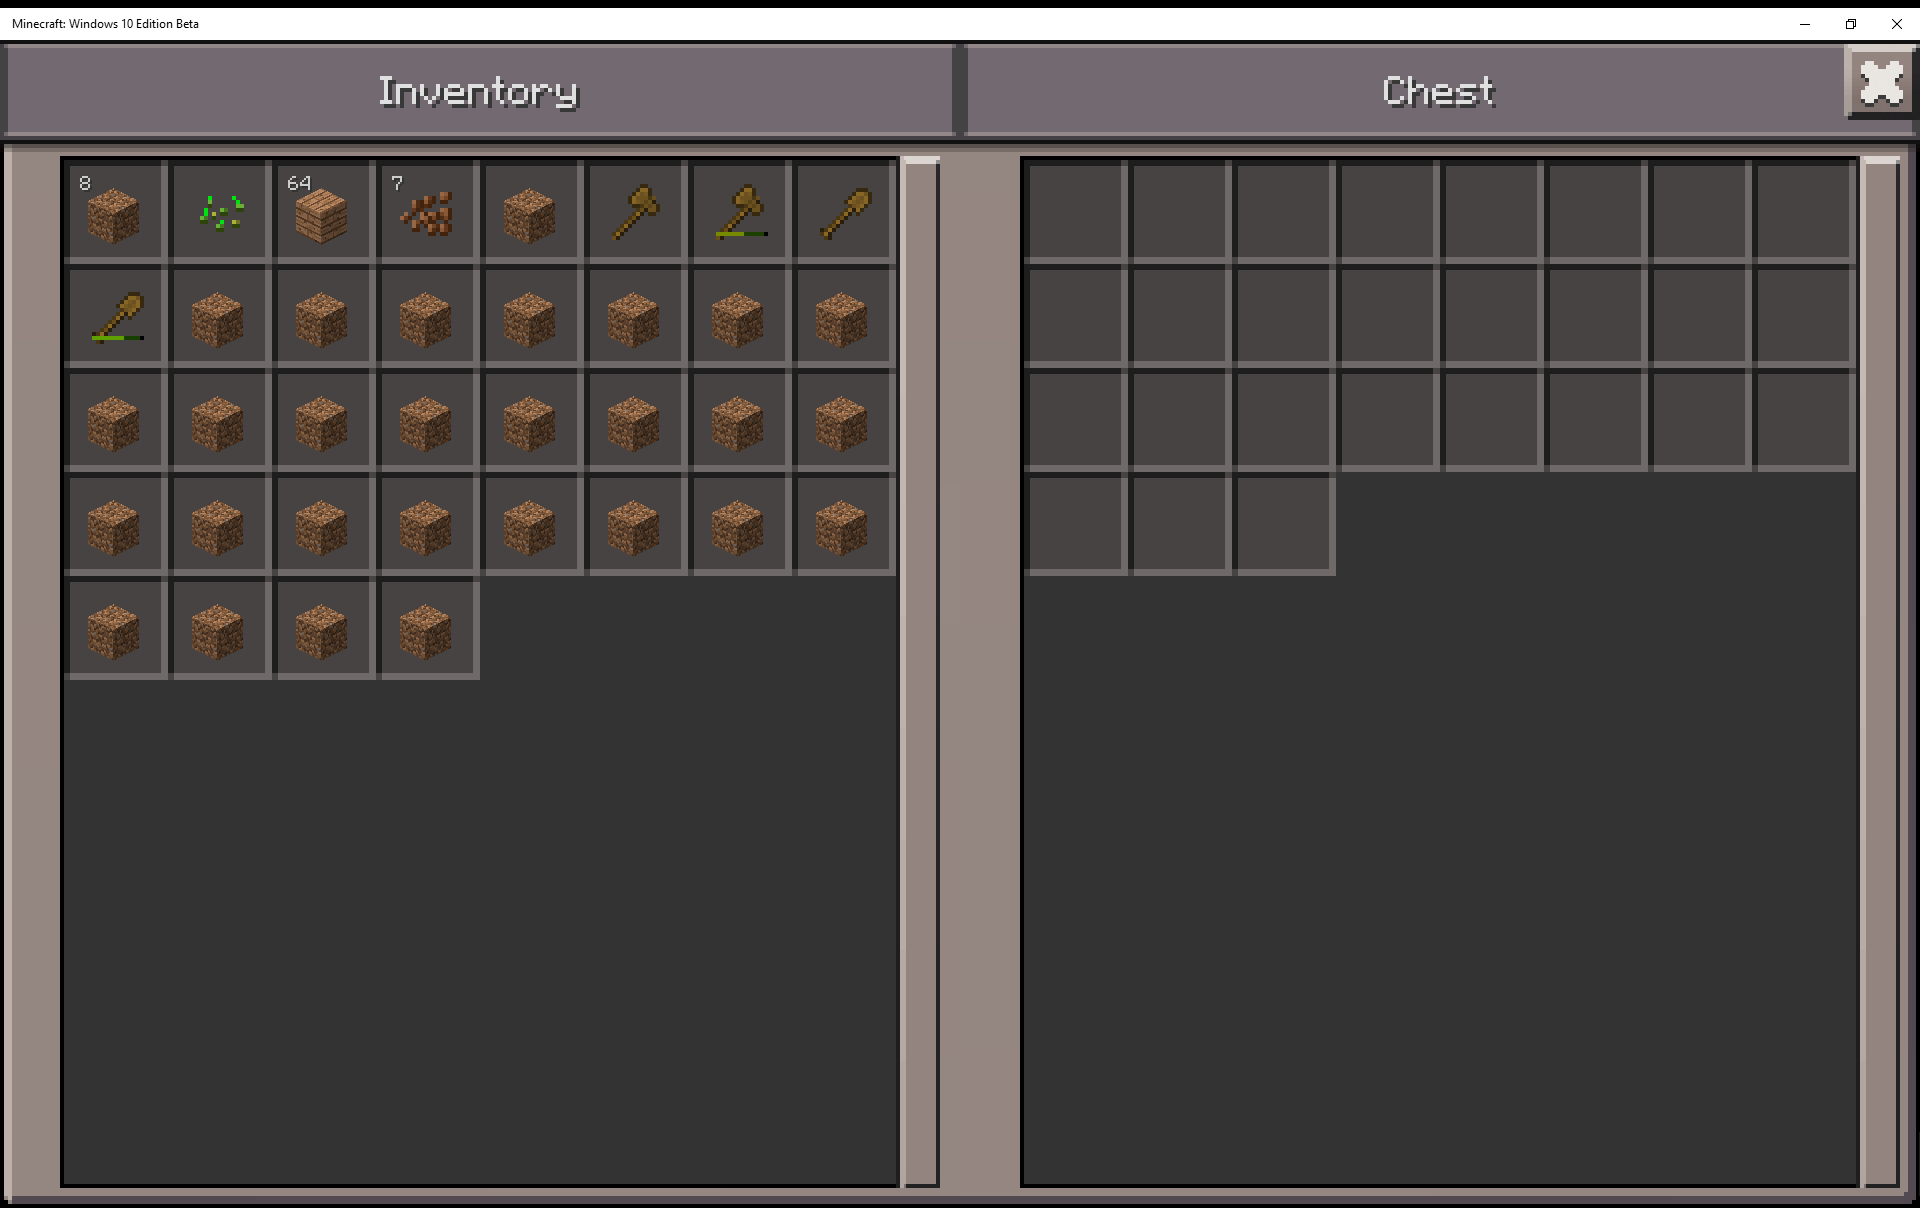 MCPE-9960] Inventory items can go to invisible slots - Jira